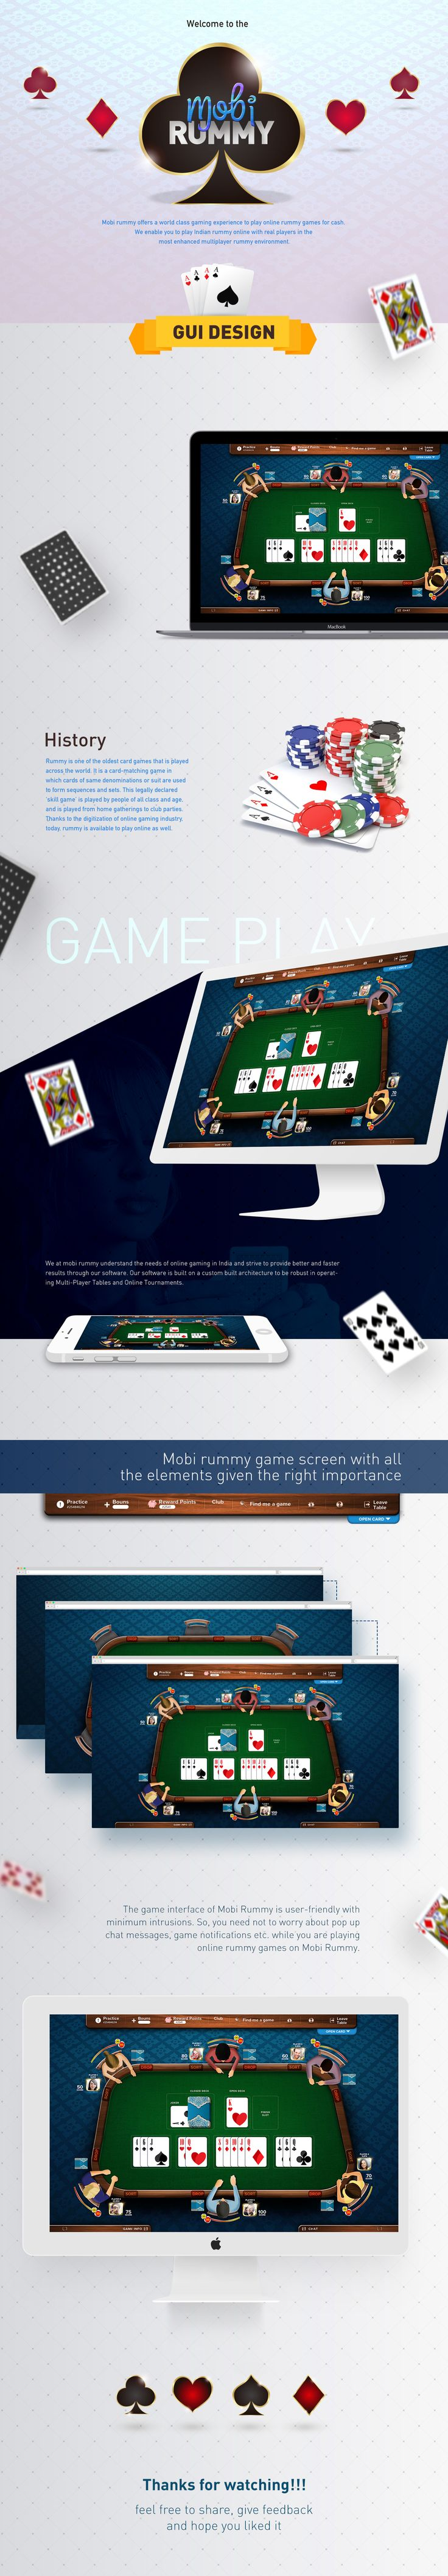 Mobi rummy offers a world class gaming experience to play online rummy games for cash. We enable you to play Indian rummy online with real players in the most enhanced multiplayer rummy environment.